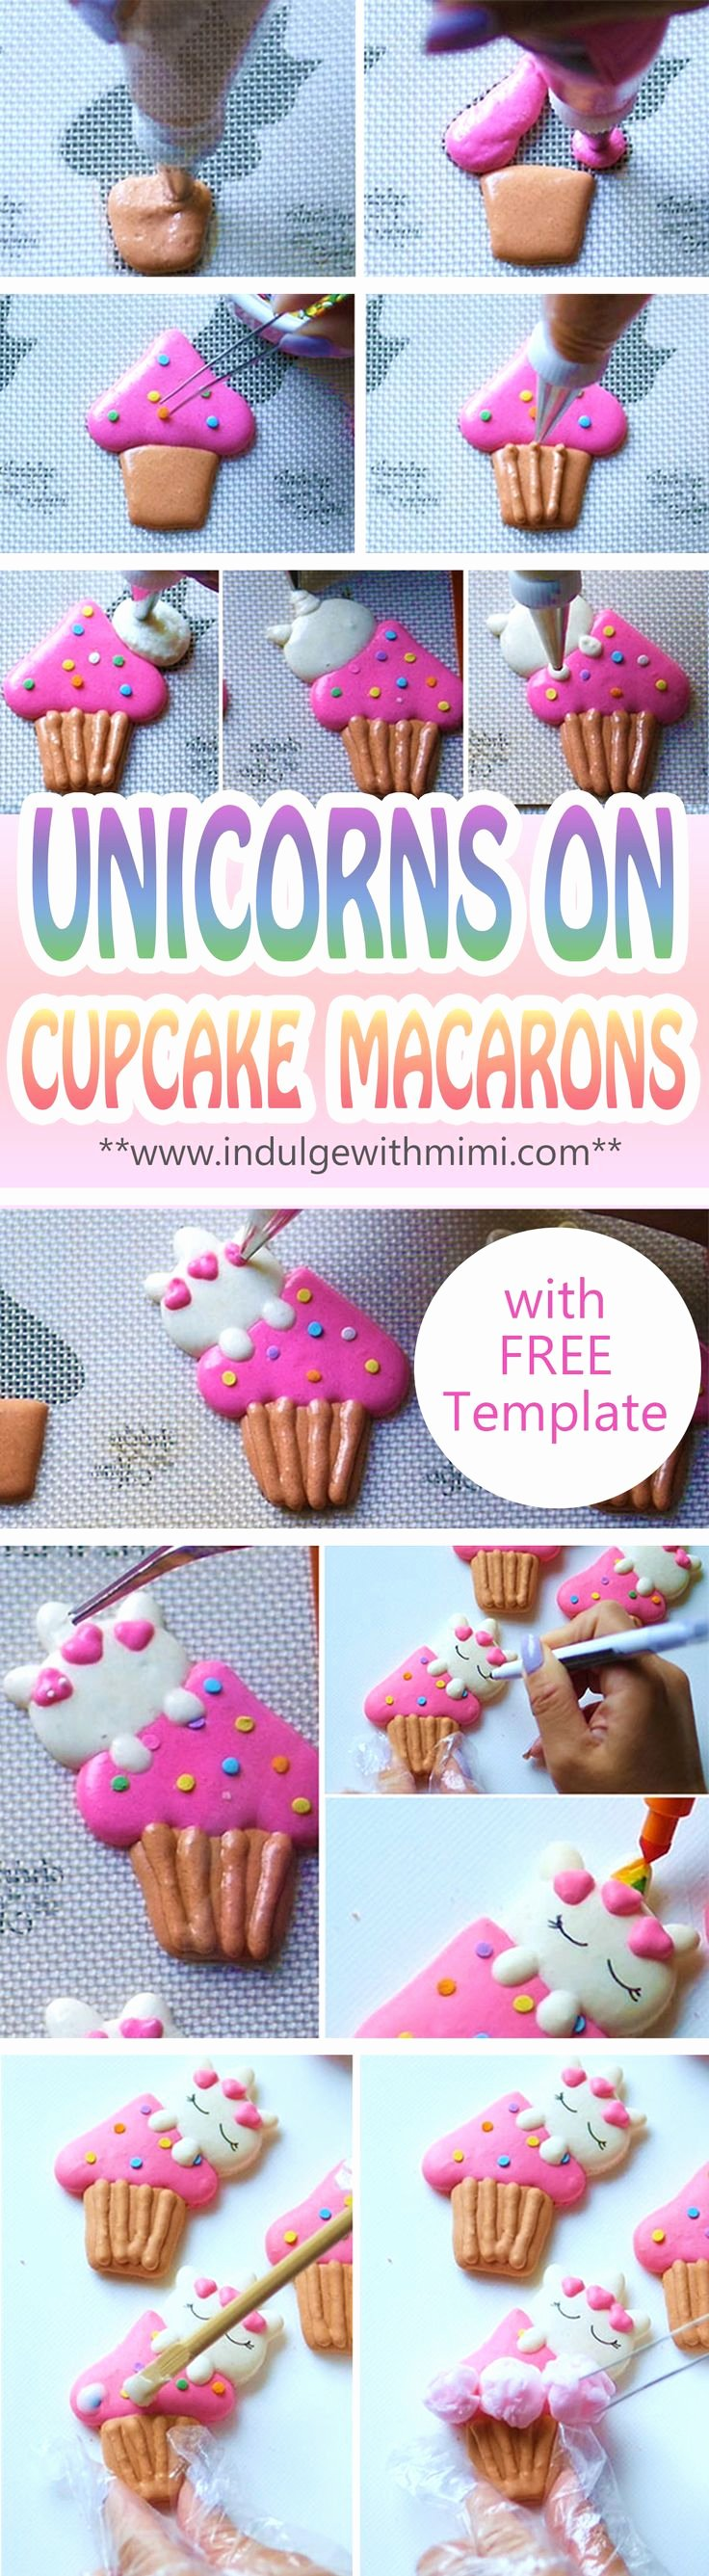 Unicorn Macaron Template Inspirational 1237 Best Macarons Images On Pinterest